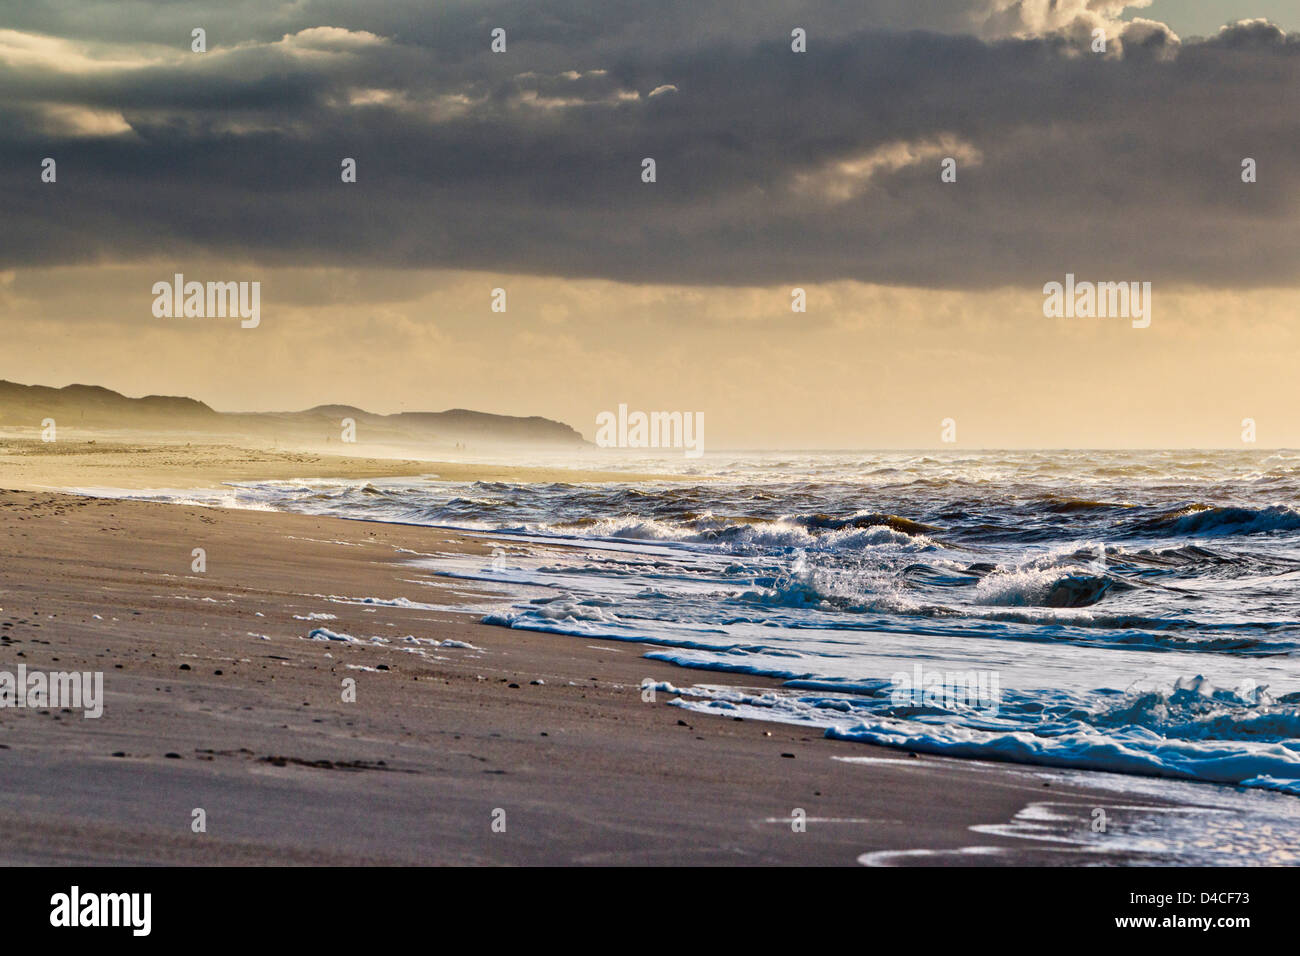 Waves in north sea, List, Sylt, Schleswig-Holstein, Germany, Europe - Stock Image